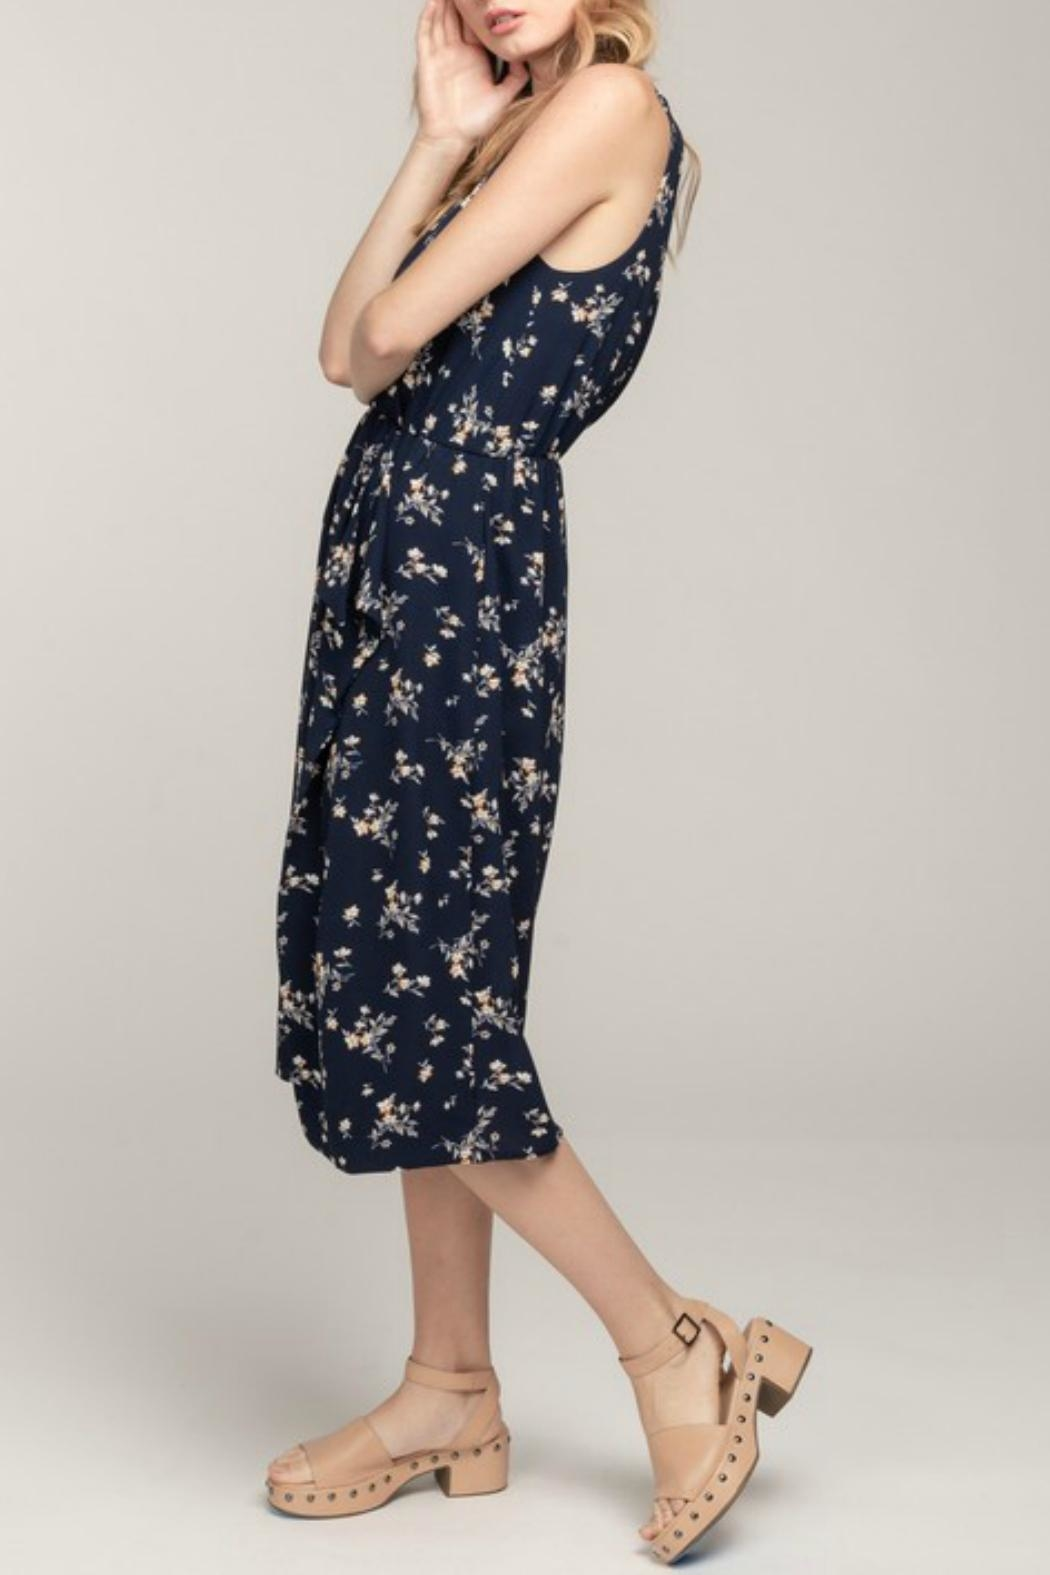 Everly Floral Wrap Midi-Dress - Side Cropped Image